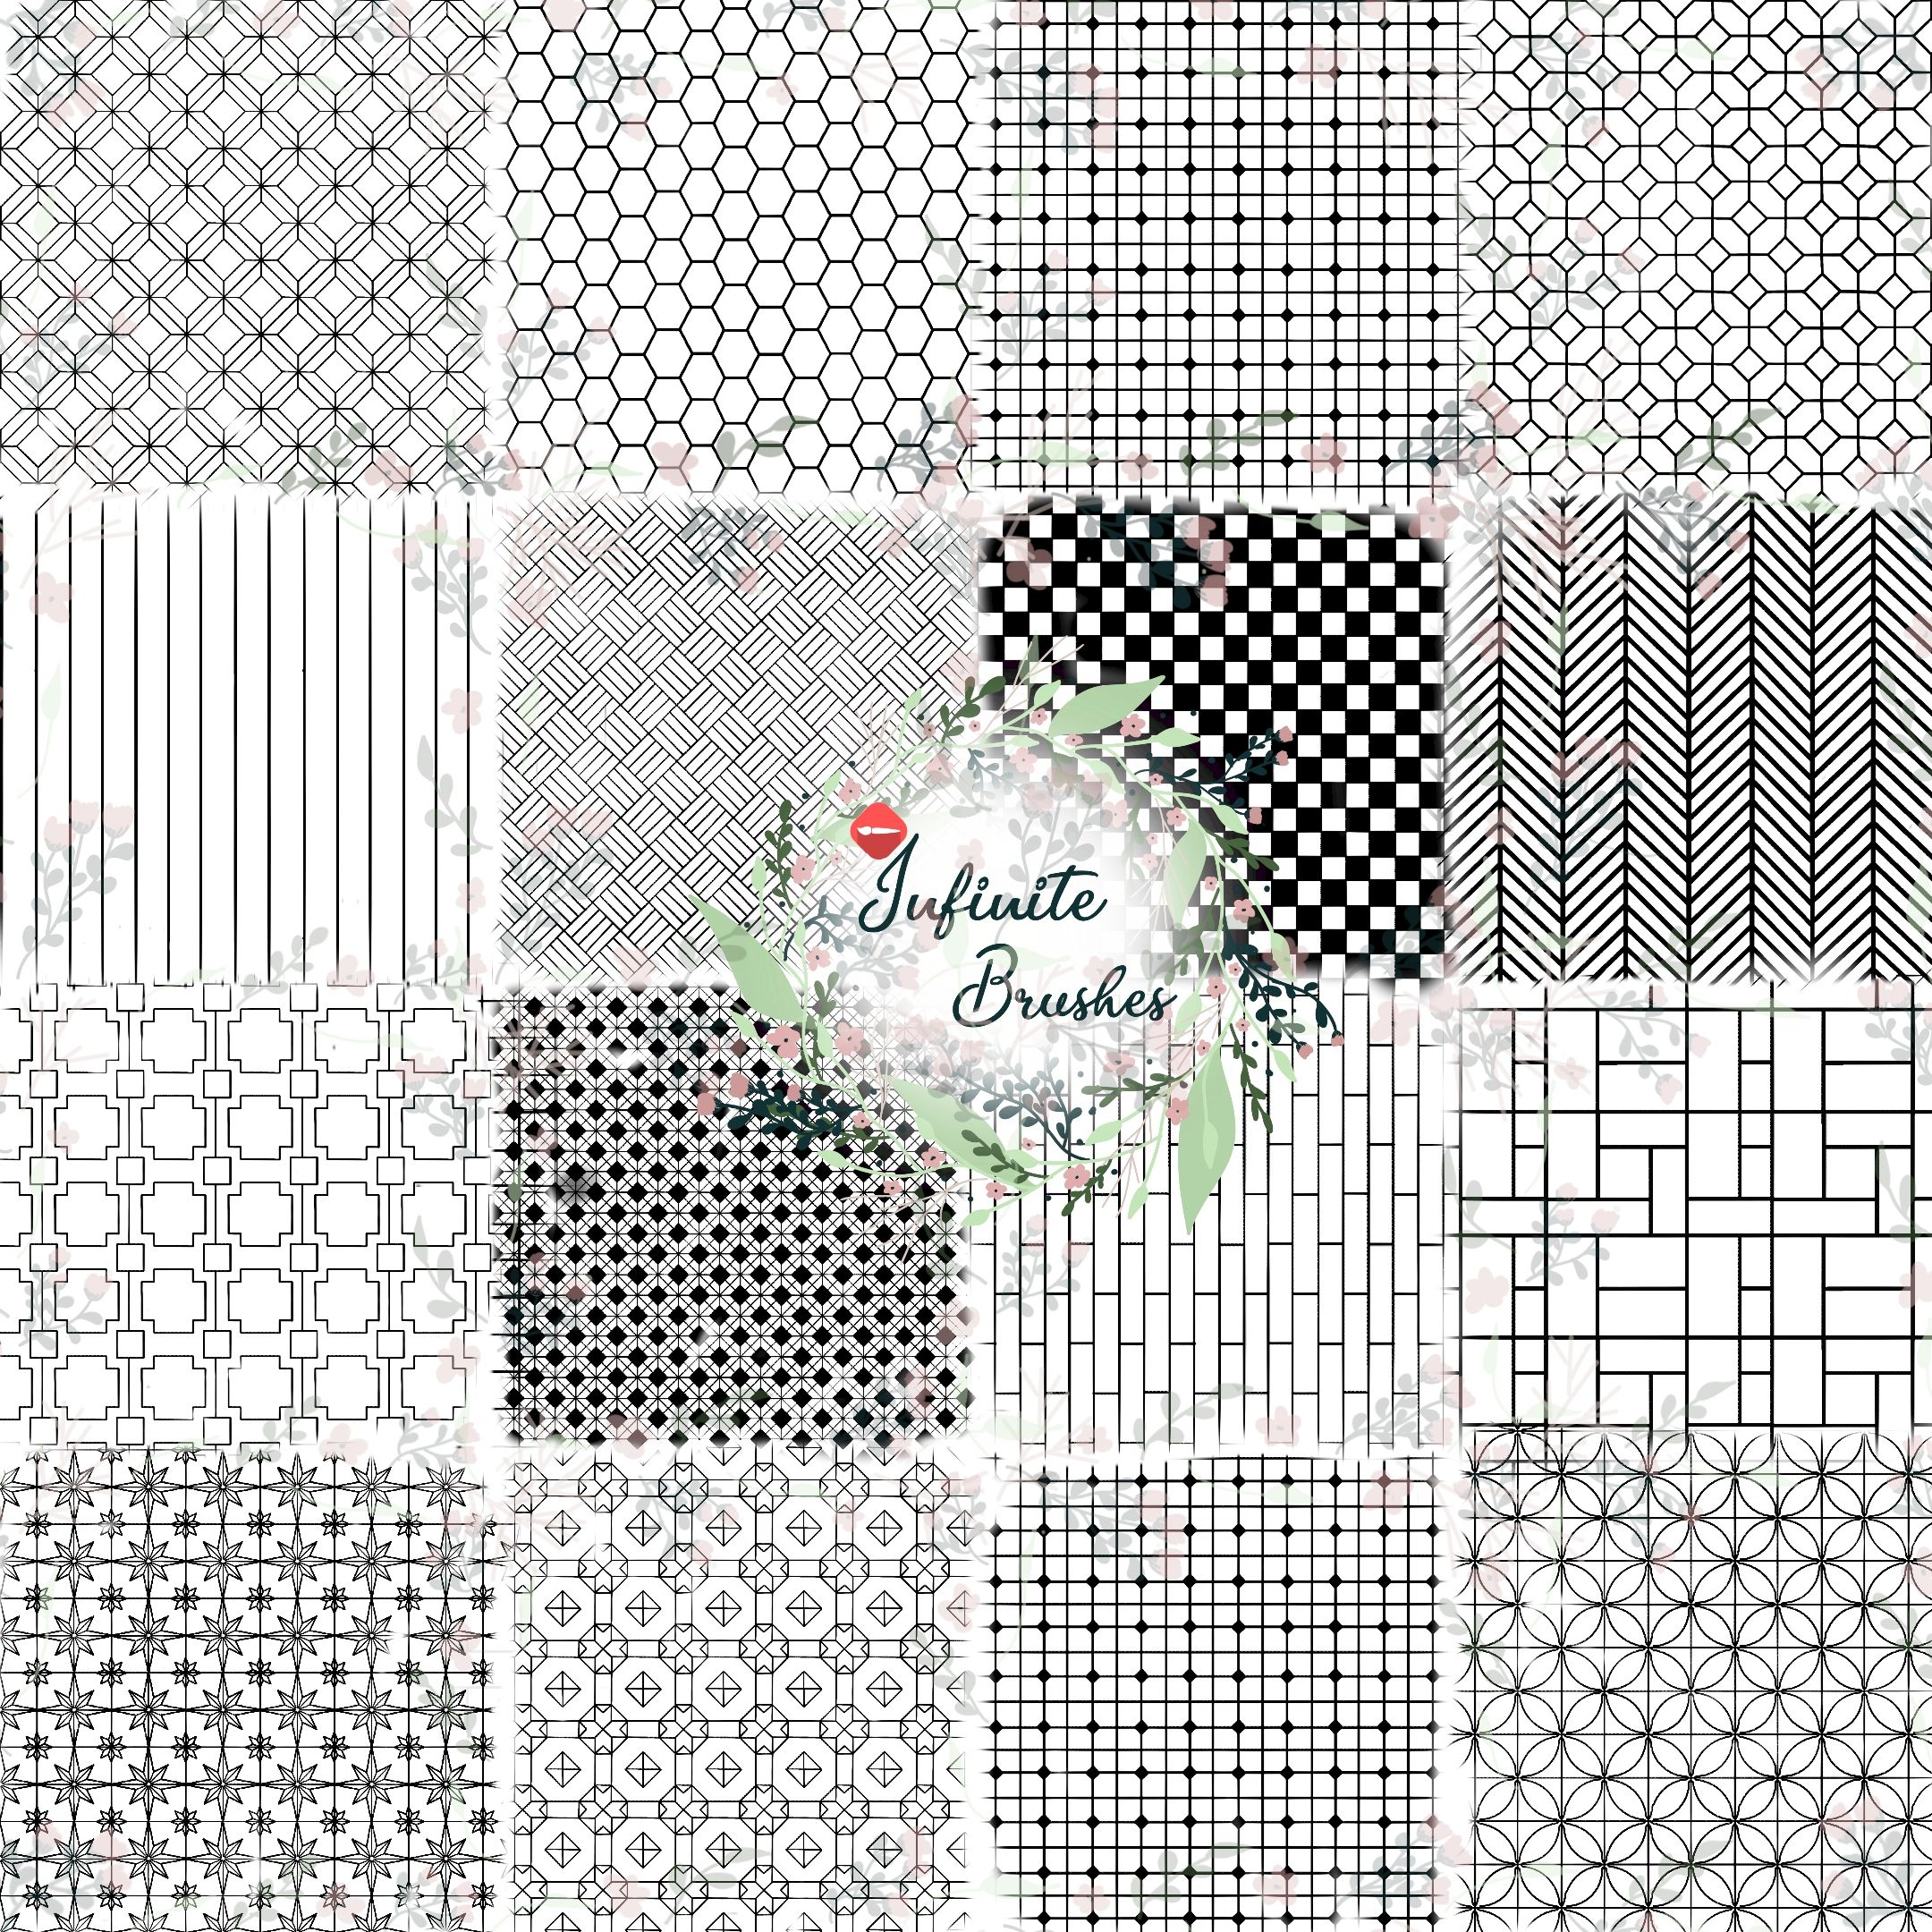 Infinite Painter Digital Brushes For Floor And Interior Etsy In 2021 Interior Sketches Drawing Interior Texture Drawing